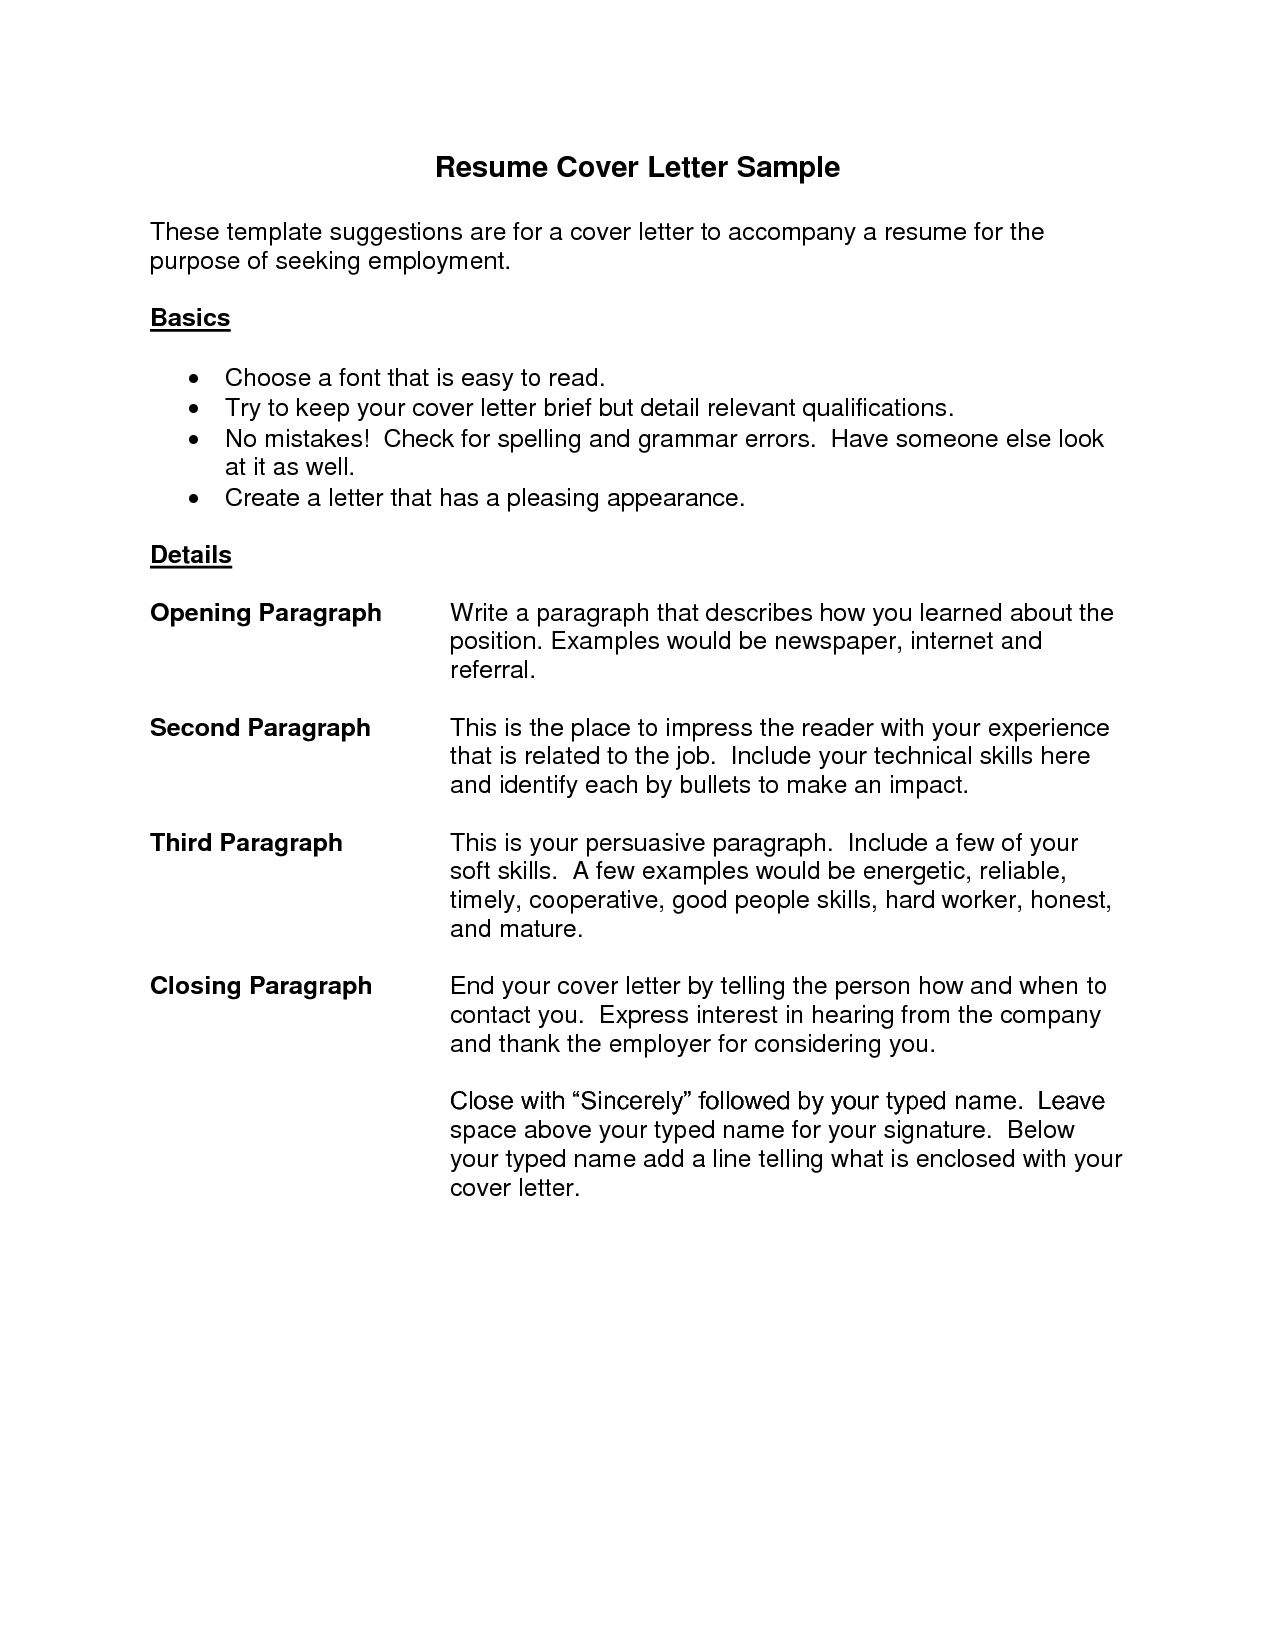 resume letter examples application - Resume Letter Examples